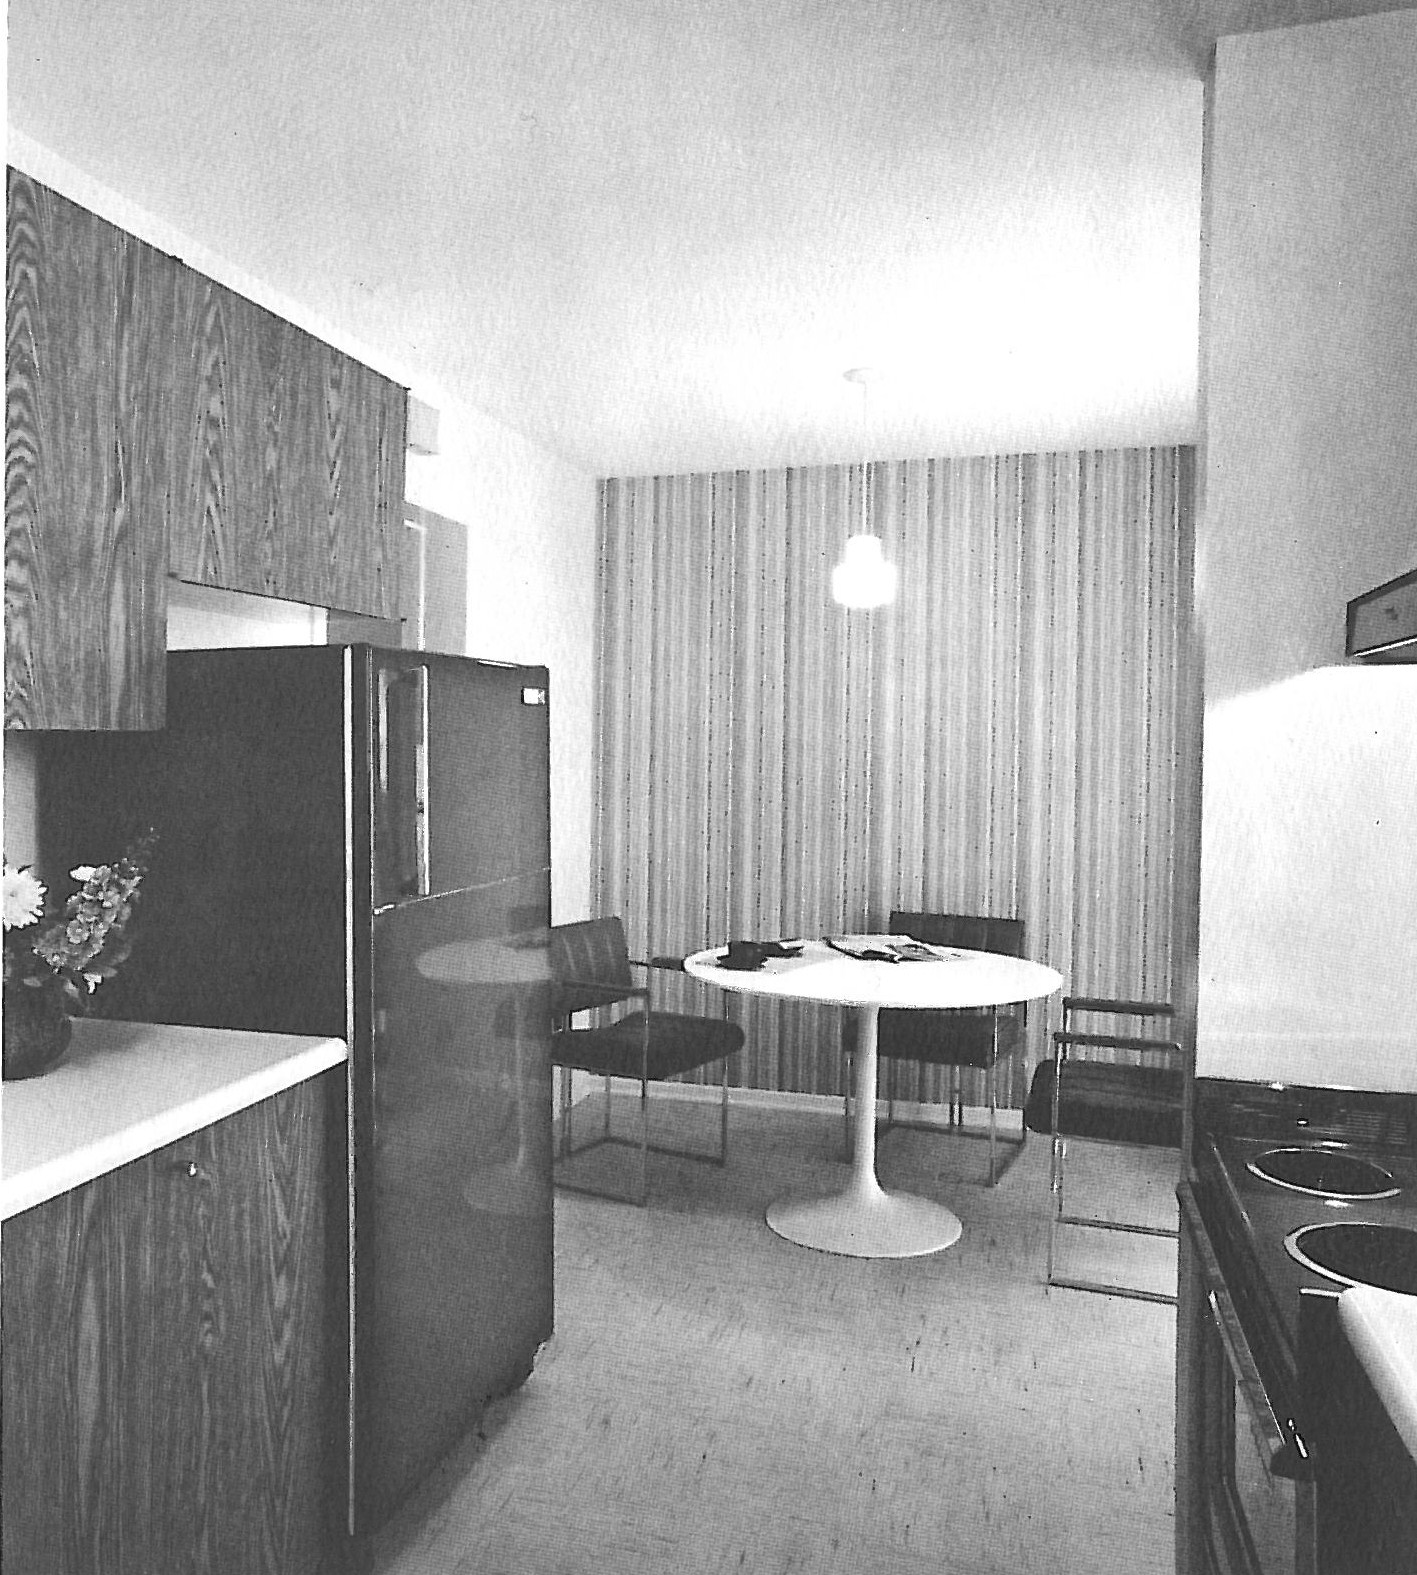 Mcm Kitchen Remodel: Mid-Century Modern And 1970s-Era Ottawa: The Time Is Right